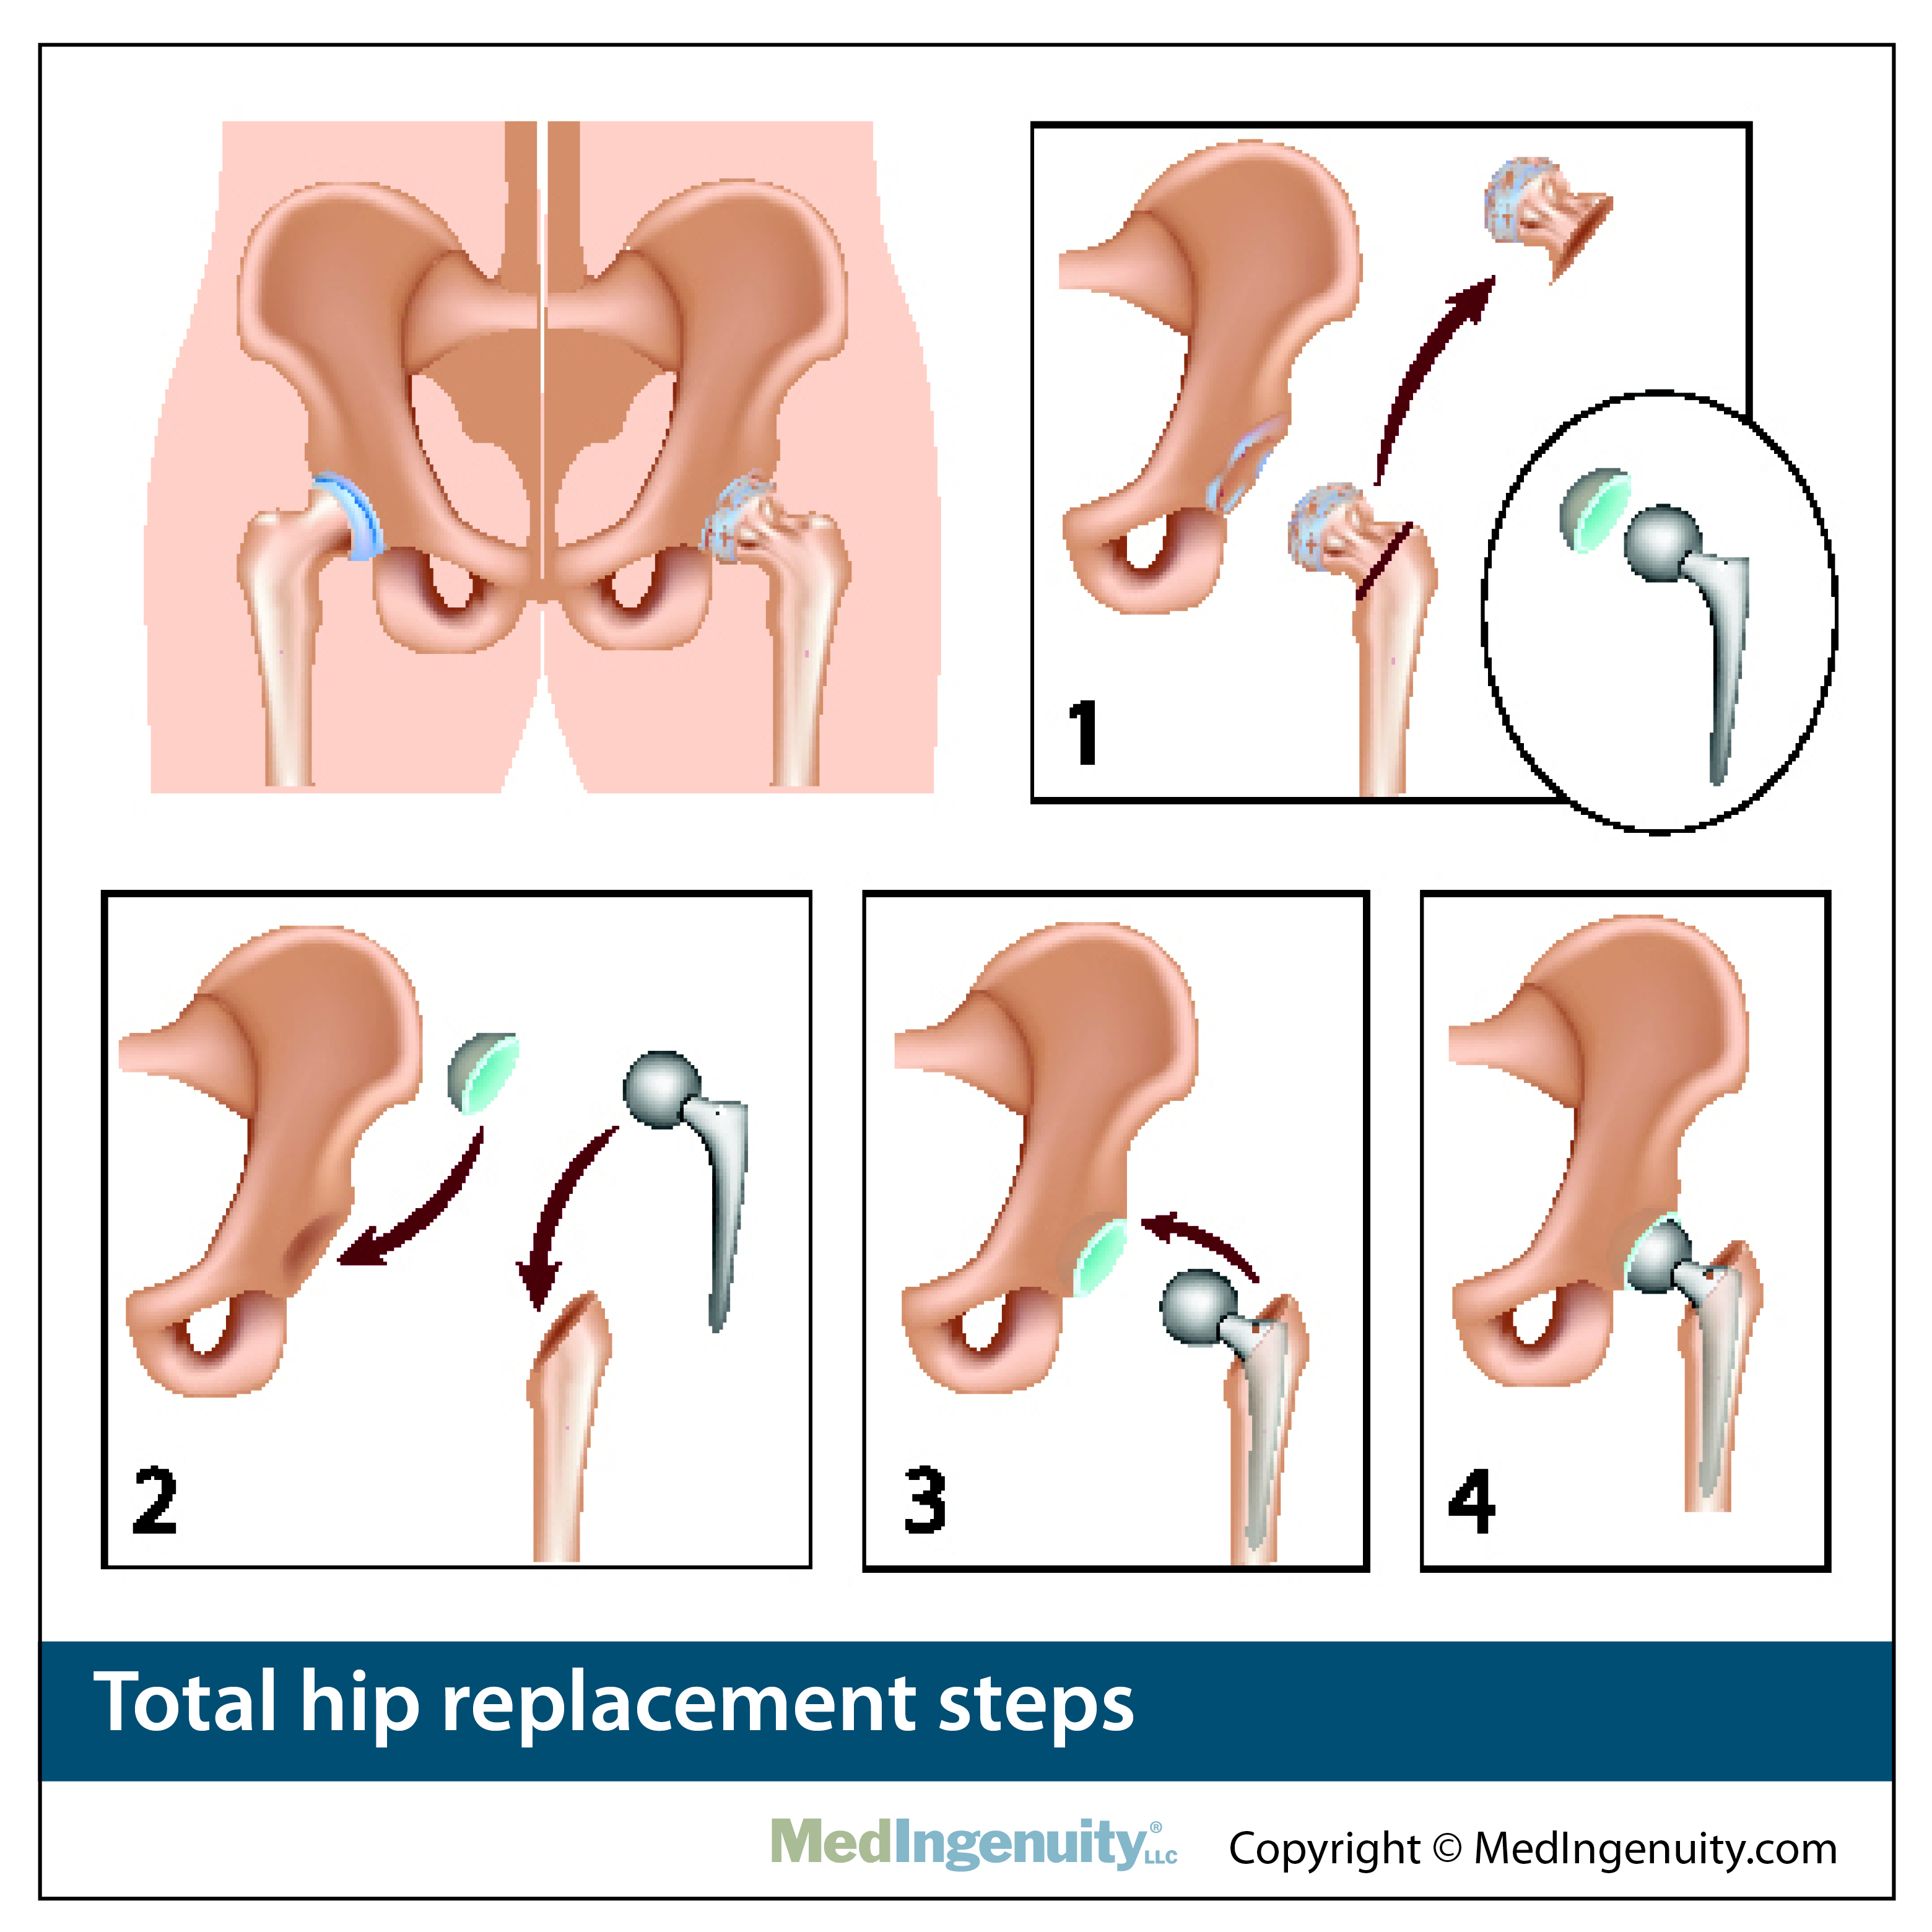 anatomy of total hip replacement steps